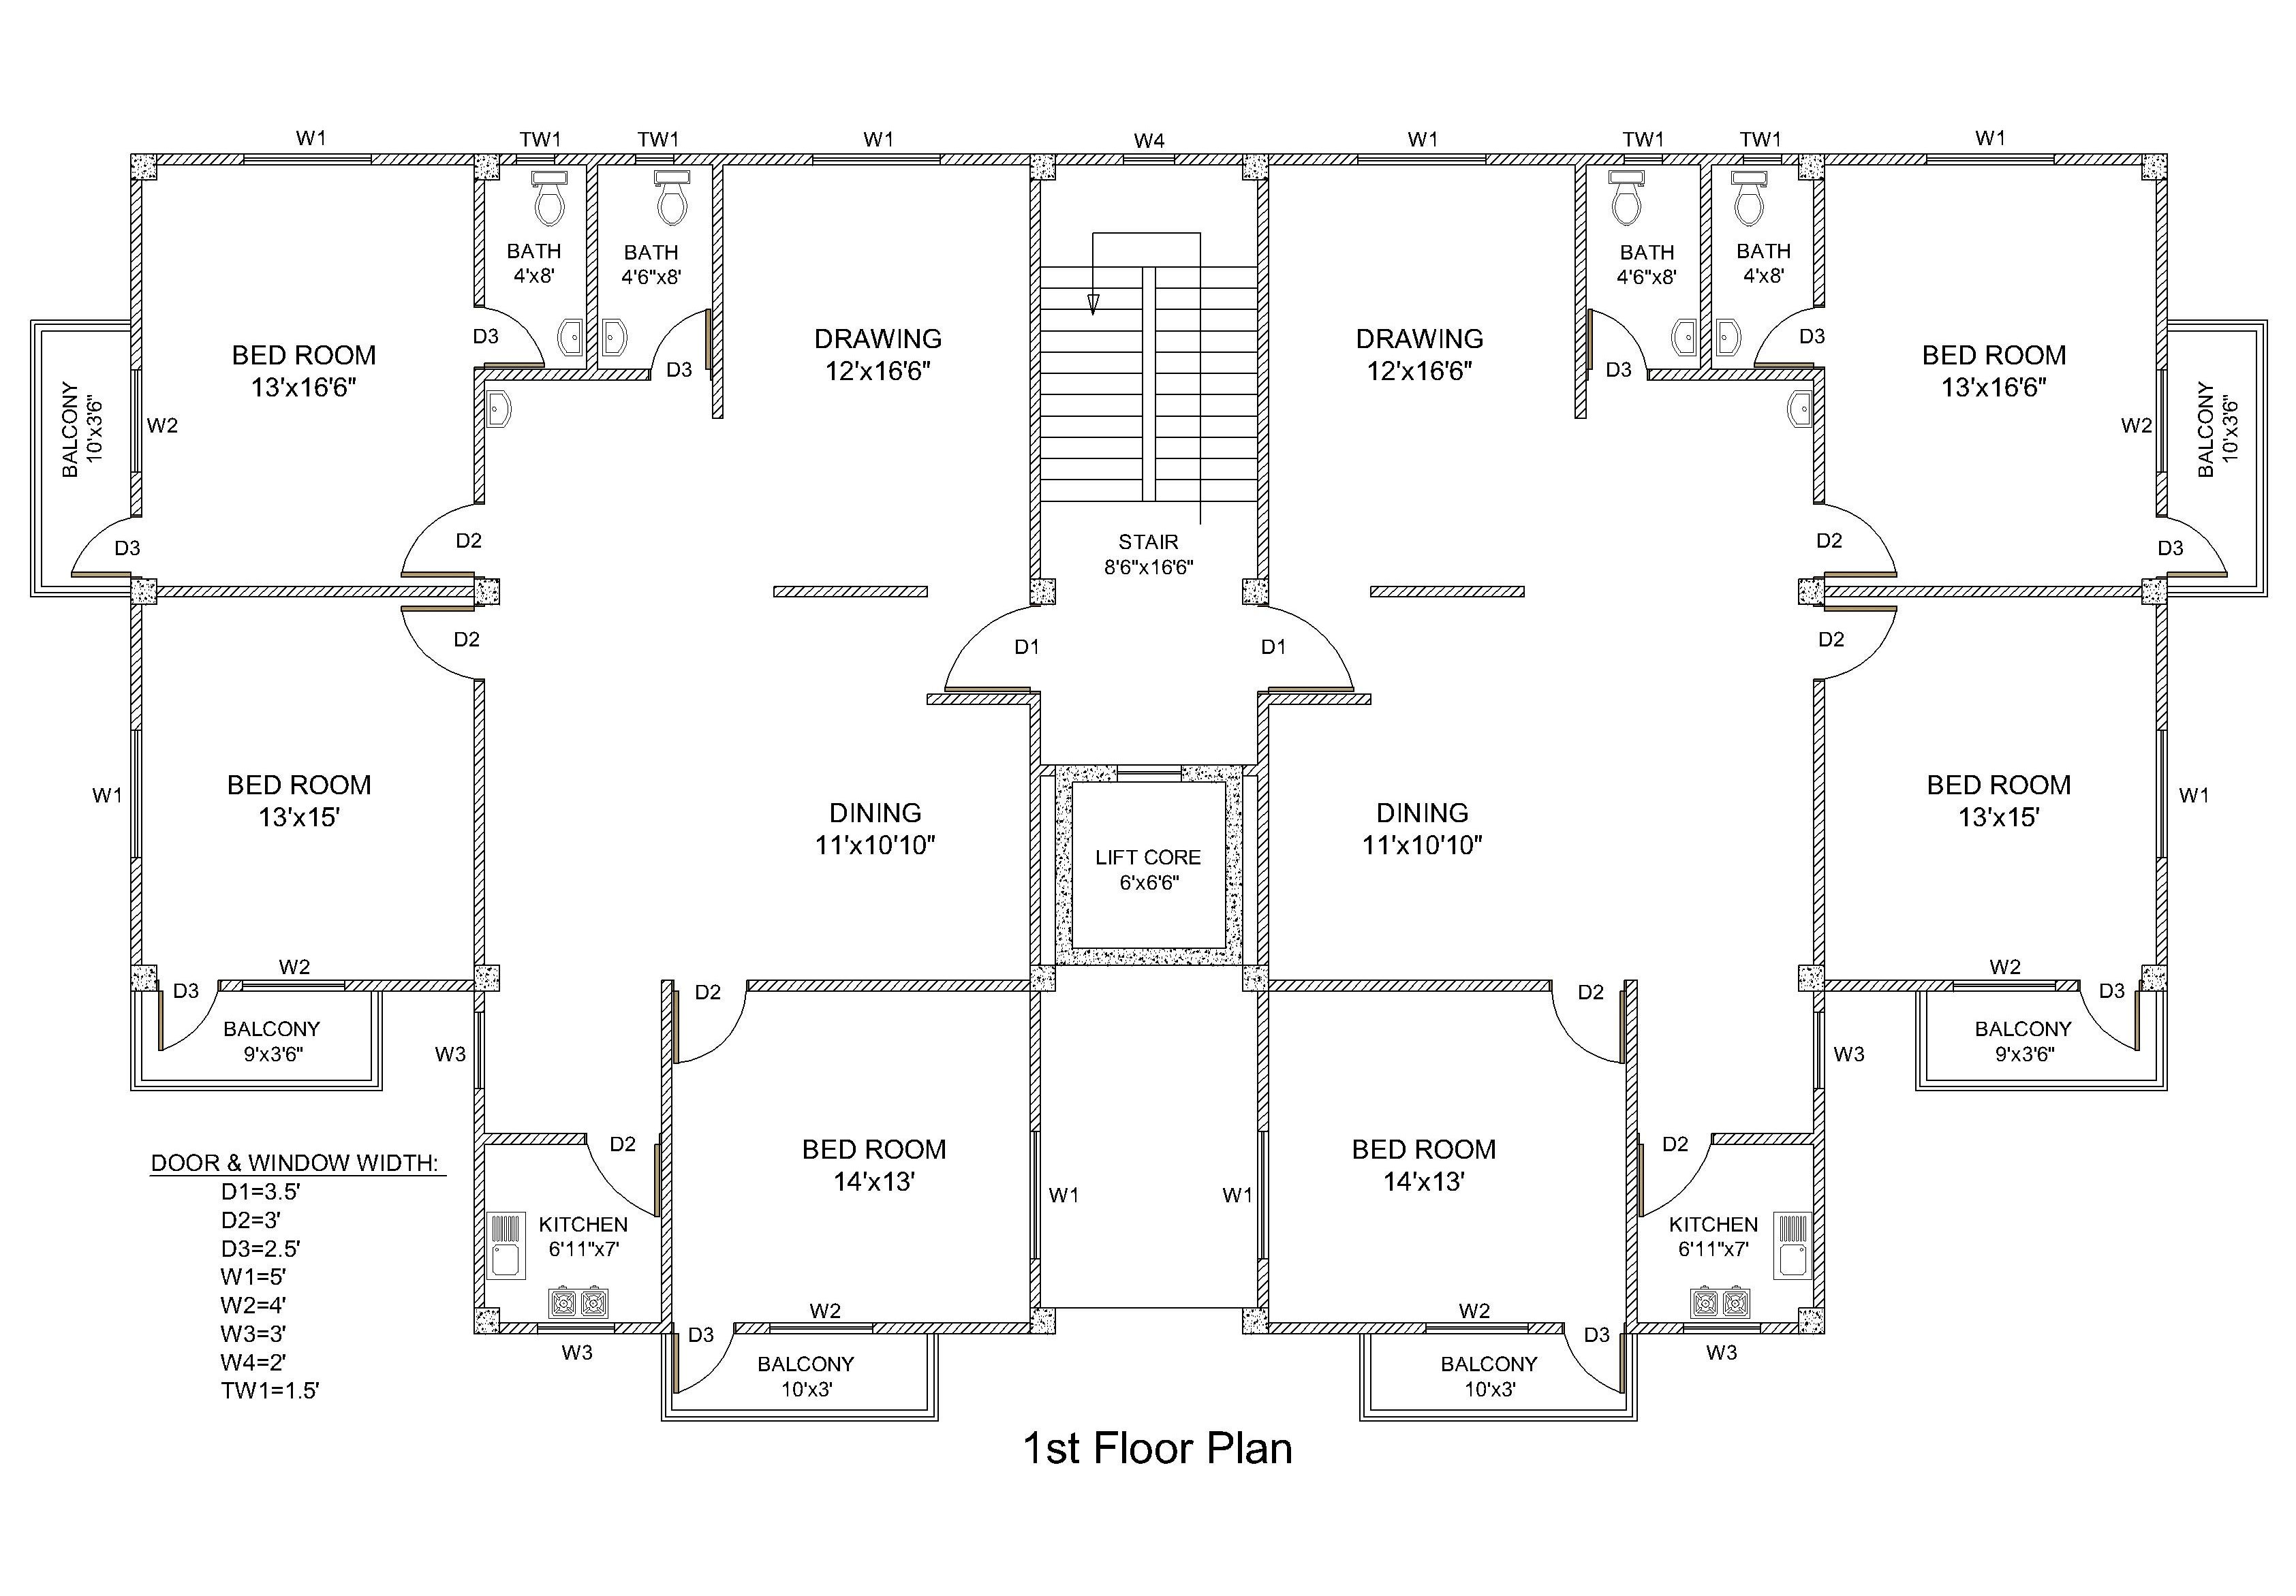 draw-2d-floor-plans-in-autocad-from-sket